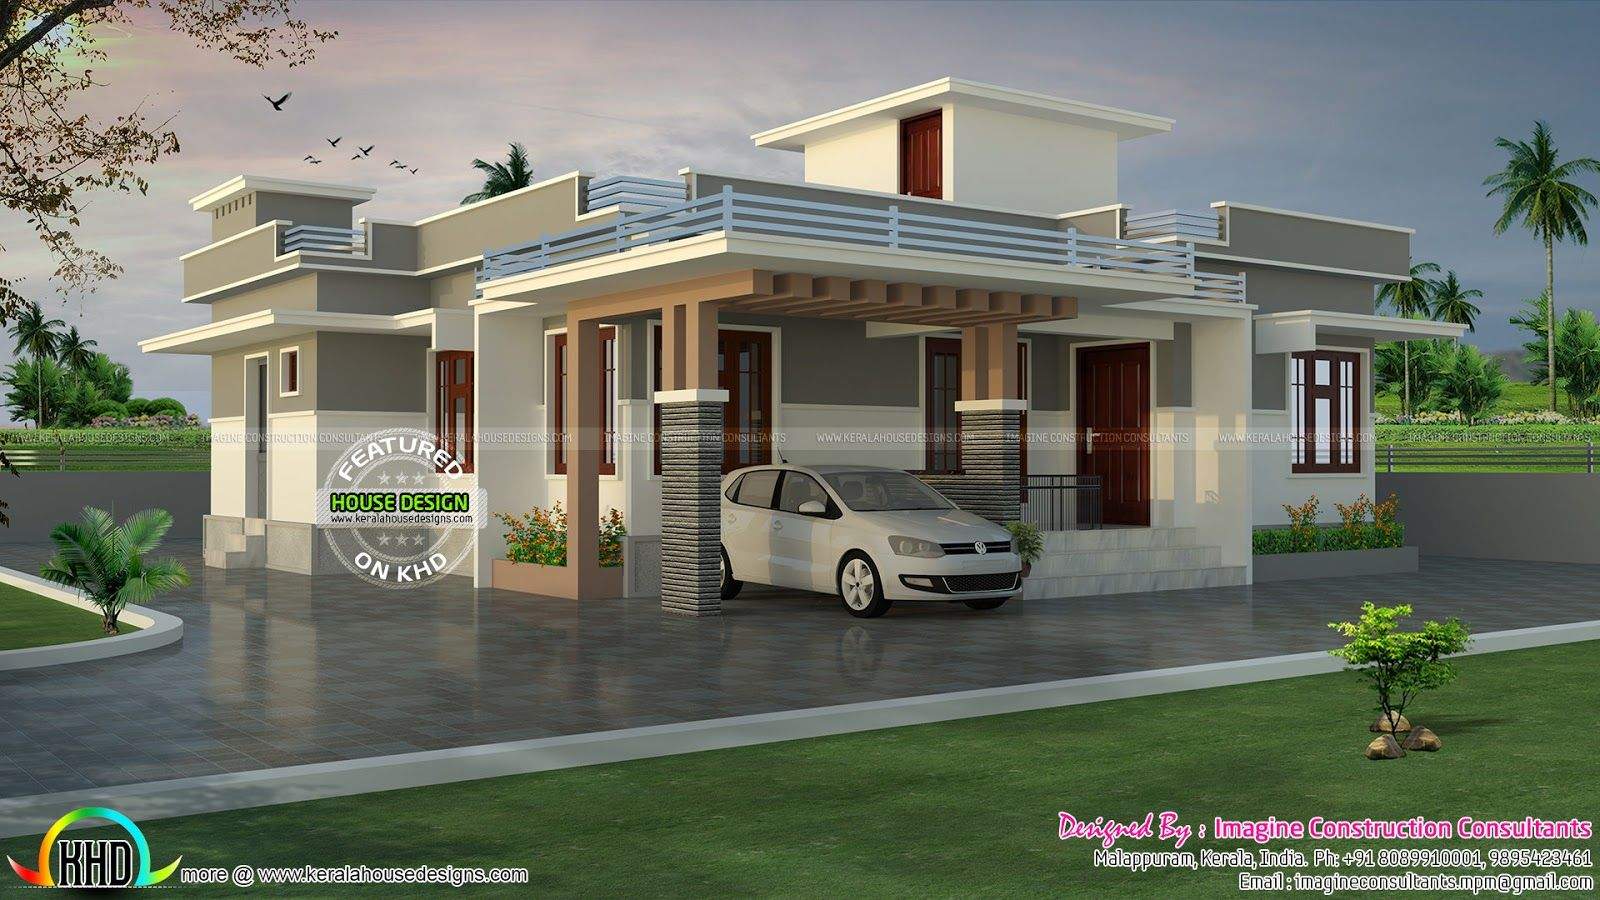 Design House Plans Online India 1200 Sq Ft Rs 18 Lakhs Cost Estimated House Plan